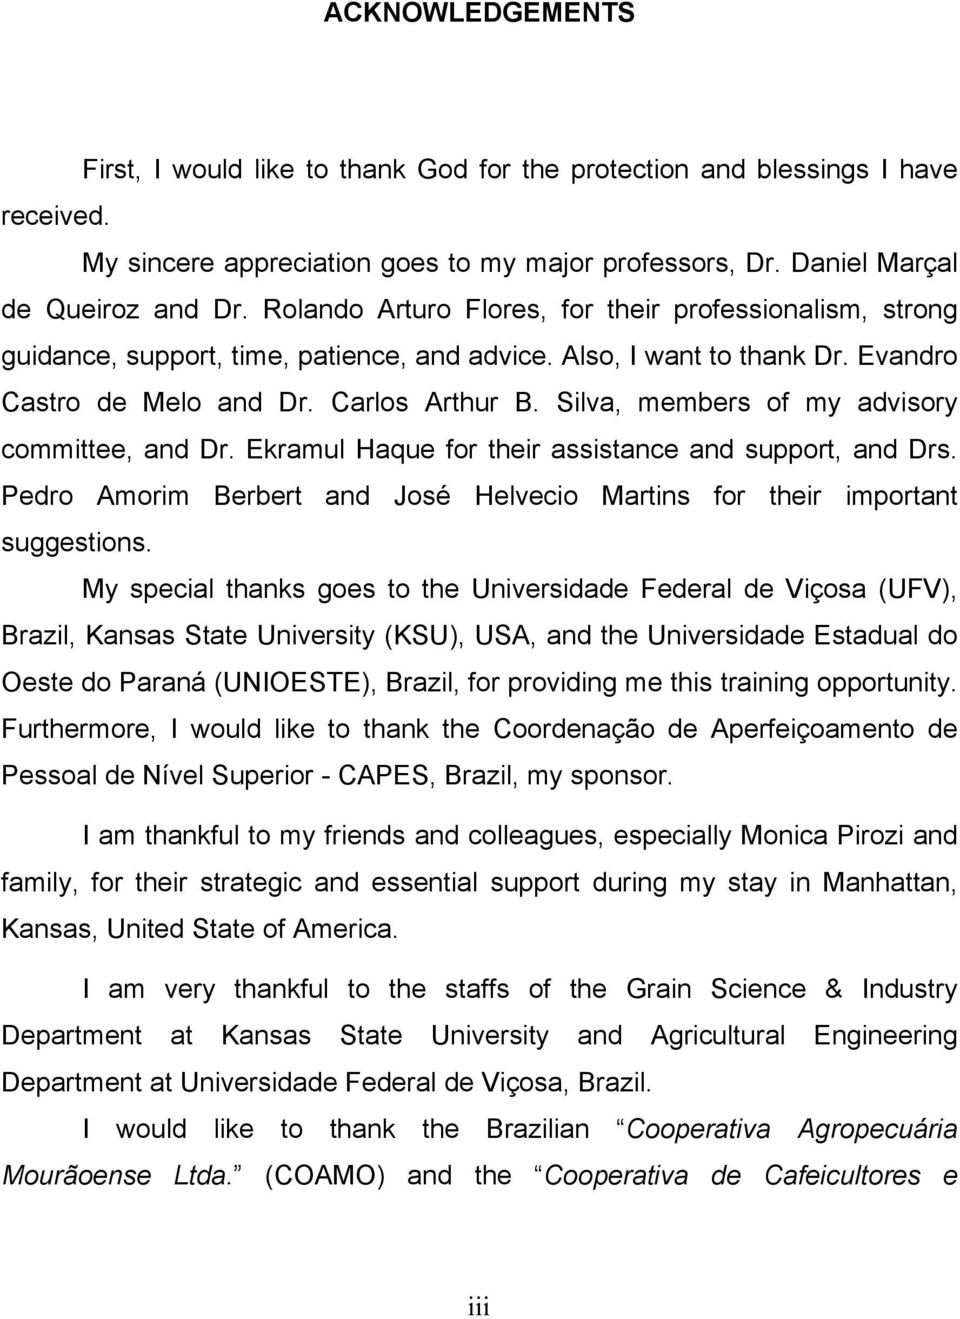 Silva, members of my advisory committee, and Dr. Ekramul Haque for their assistance and support, and Drs. Pedro Amorim Berbert and José Helvecio Martins for their important suggestions.